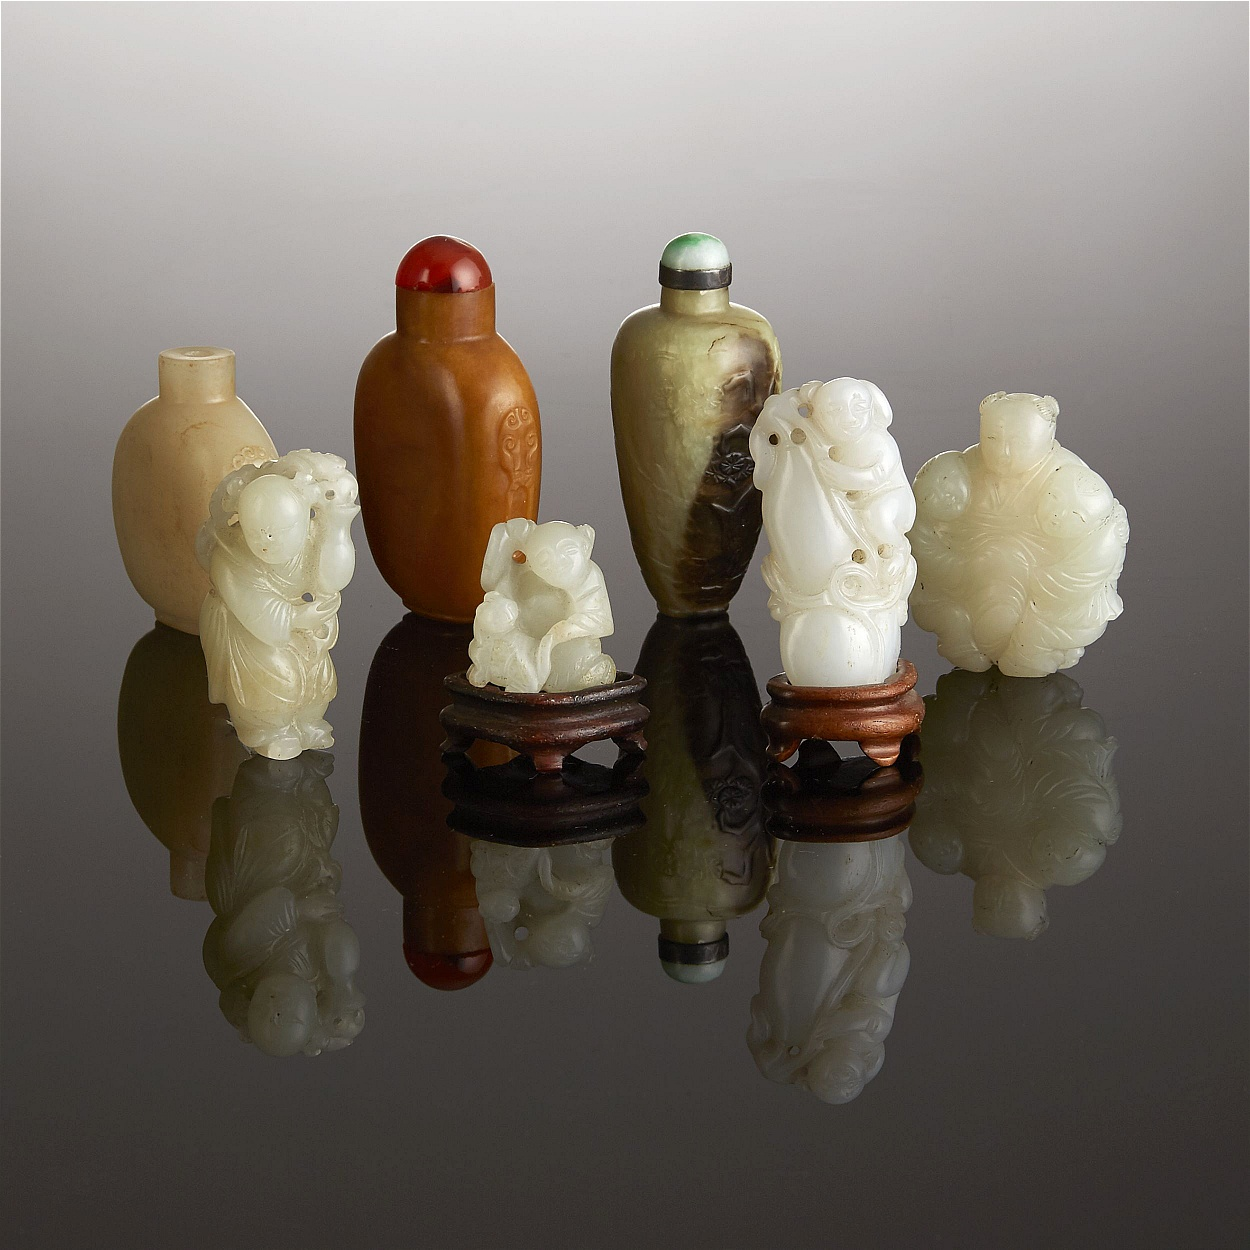 A Collection of Jade Carvings and Snuff Bottles